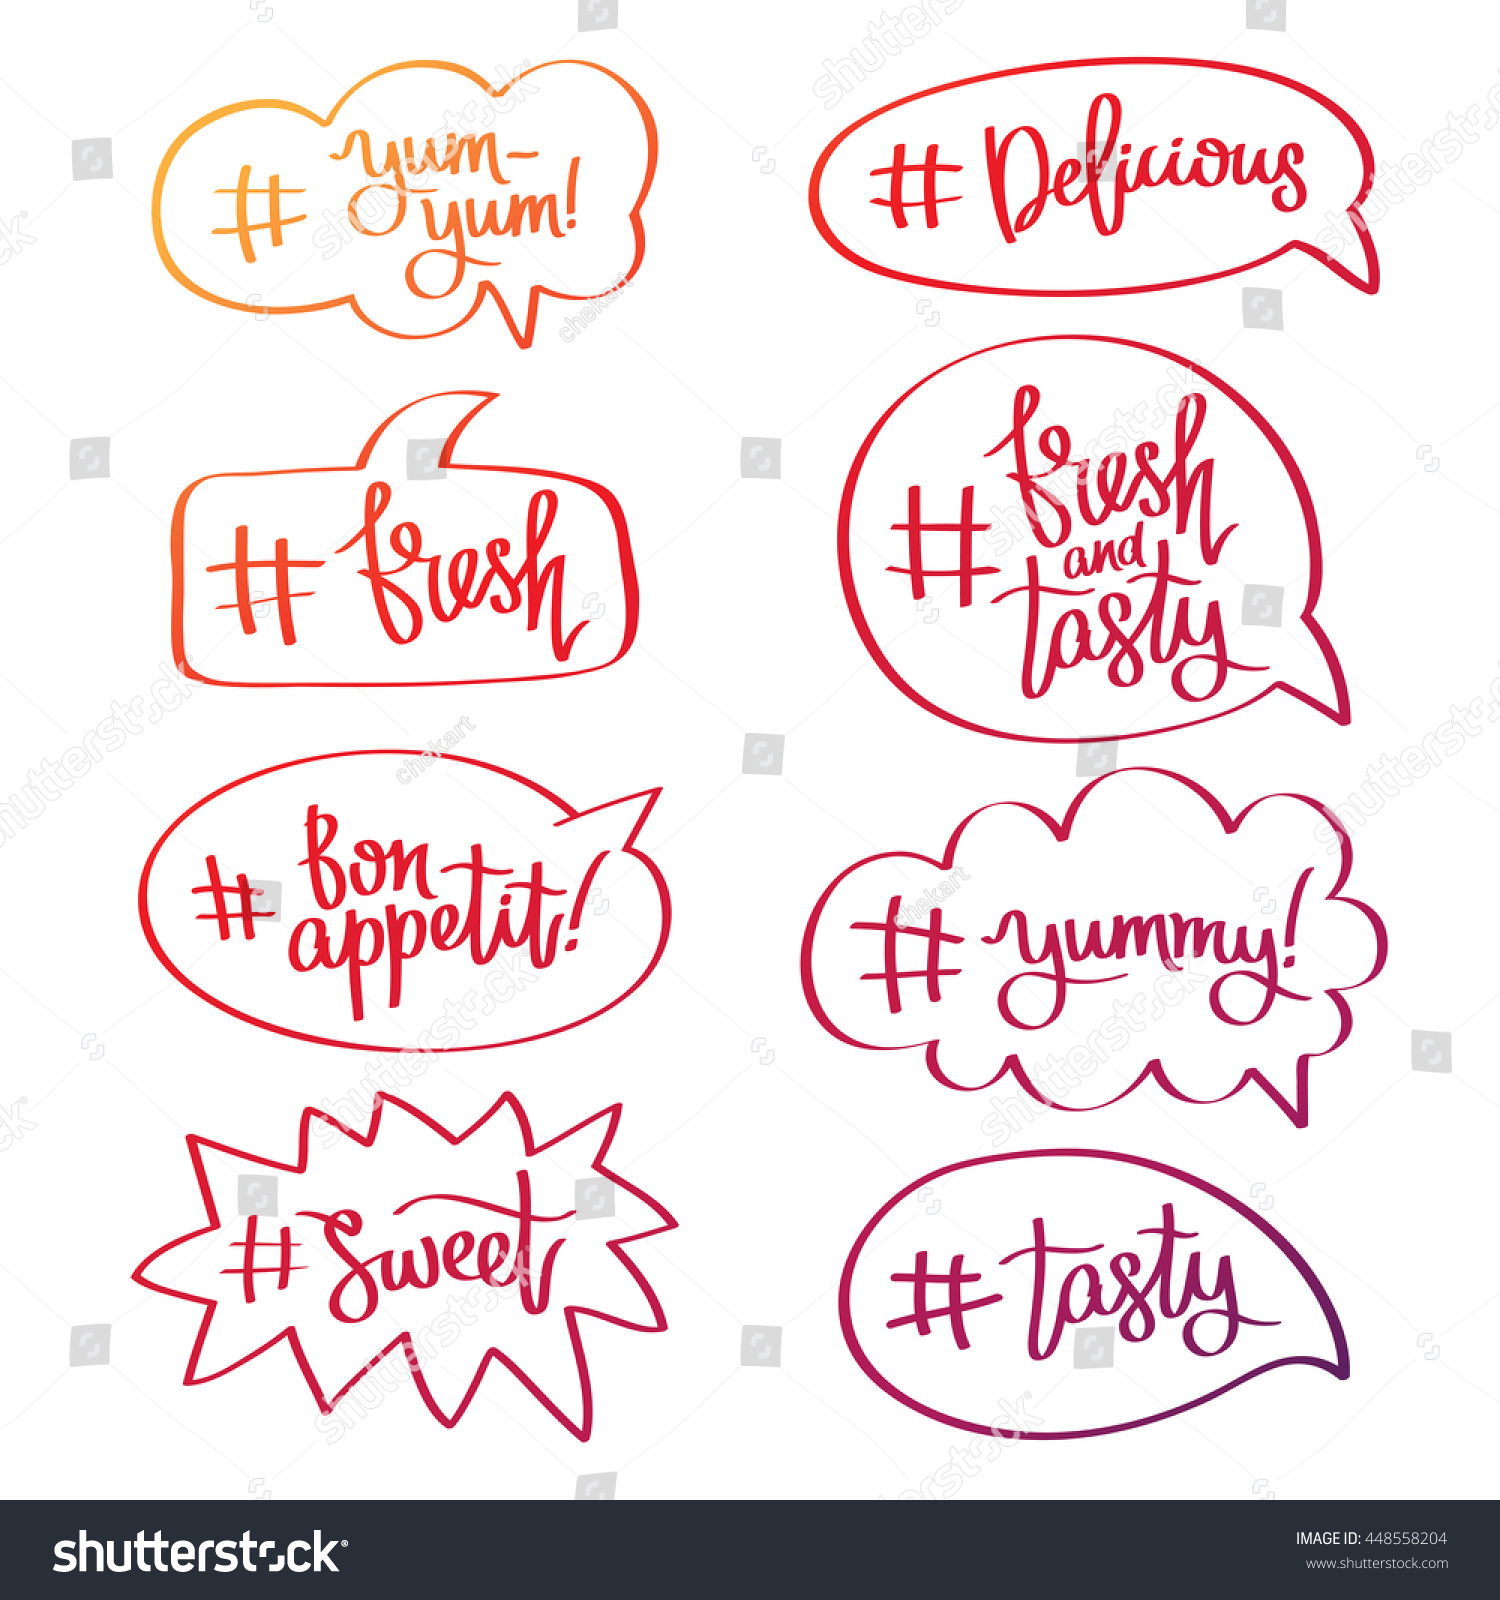 Set quotes icons bubble words hashtags stock vector